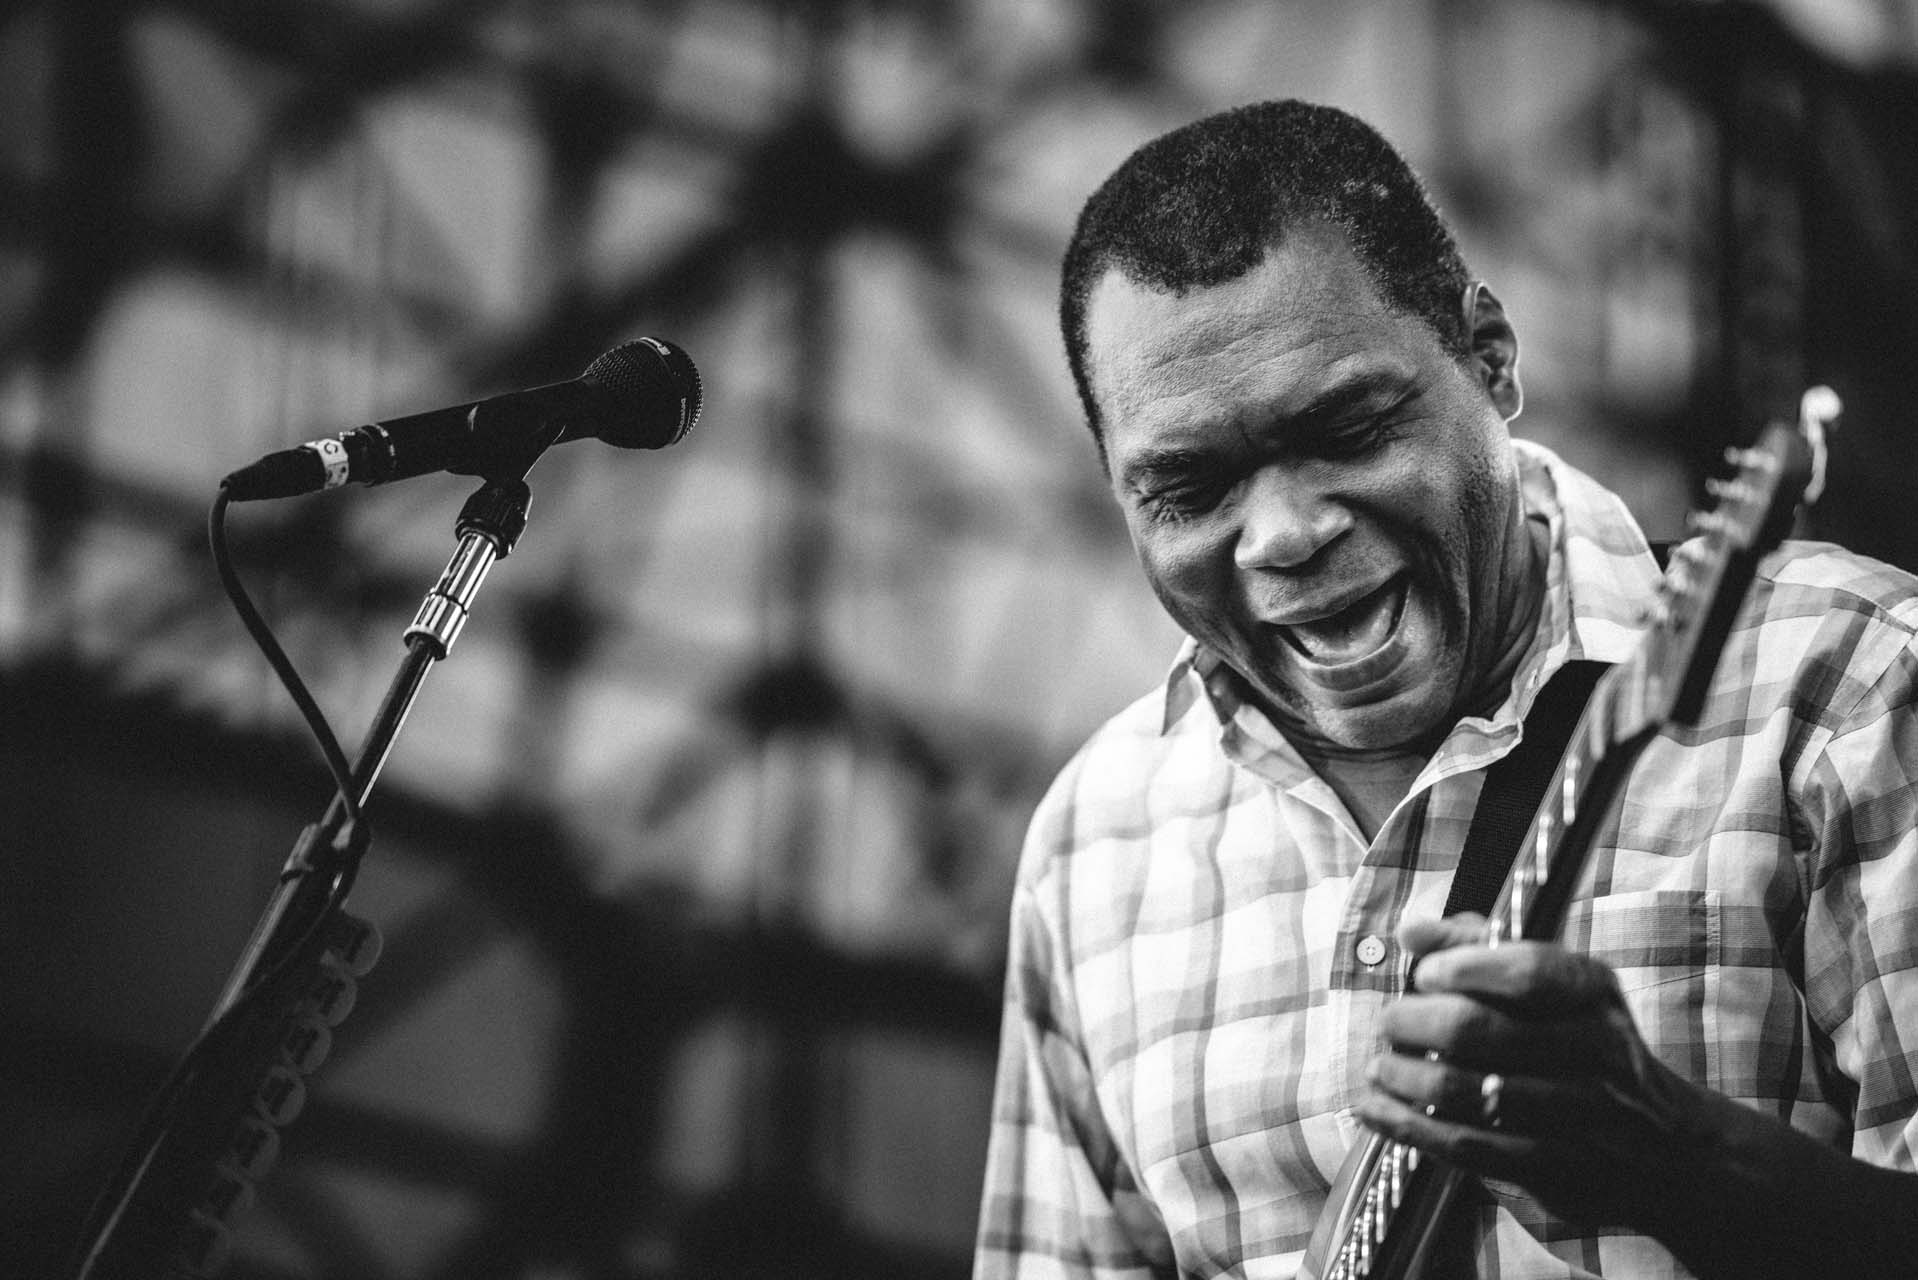 robert_cray_live_the_lawn_indianapolis_2013-15